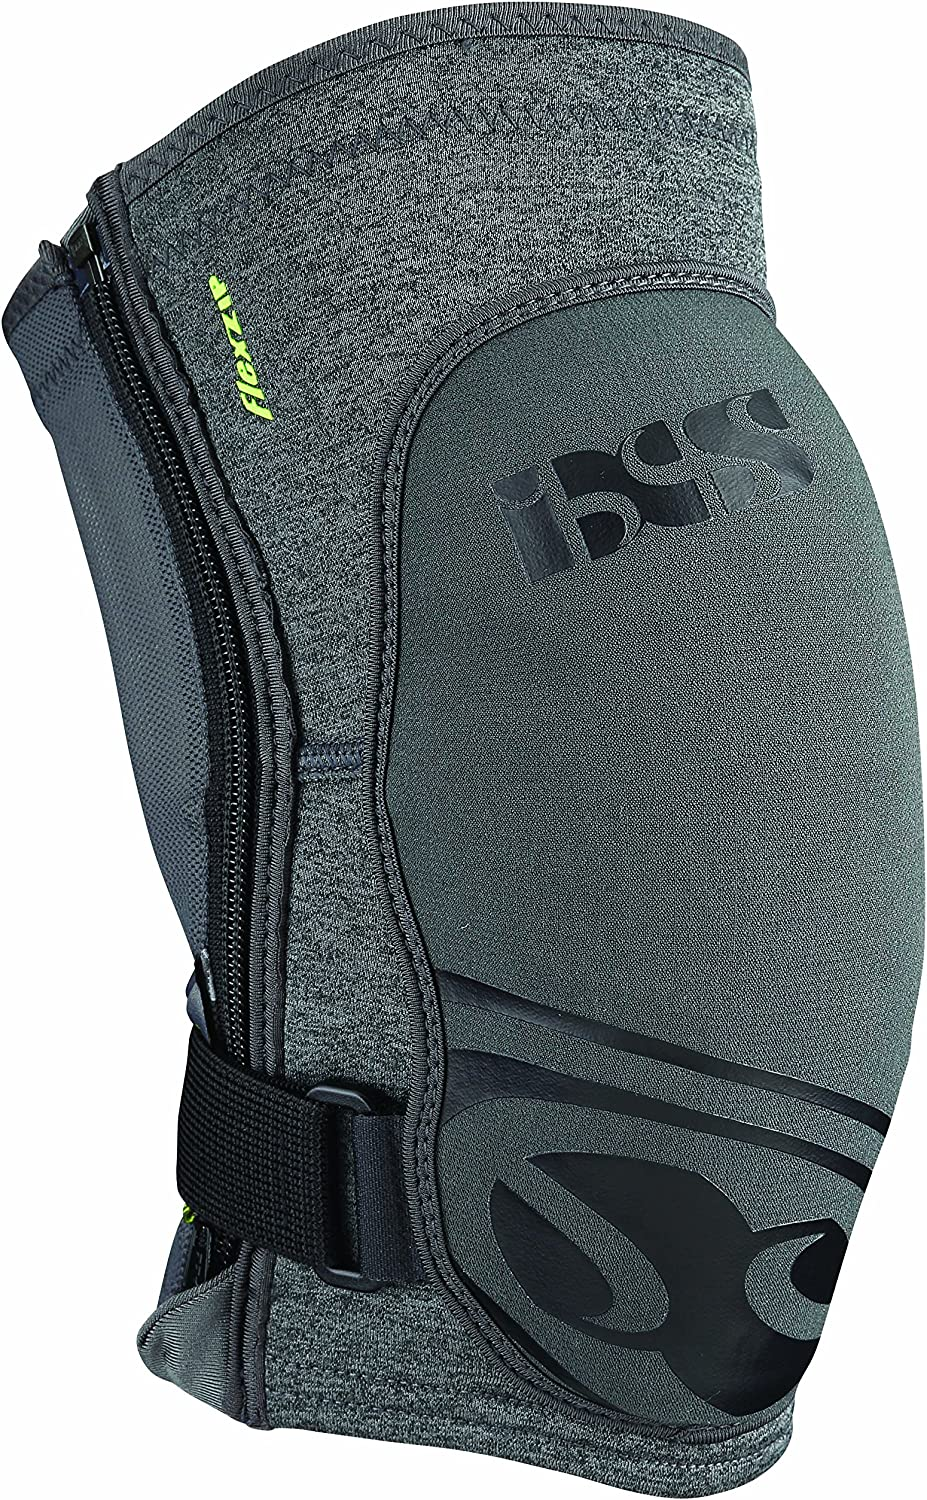 IXS Unisex Flow Zip Breathable Moisture-Wicking Padded Protective Knee Guard (482-510-6617-009)